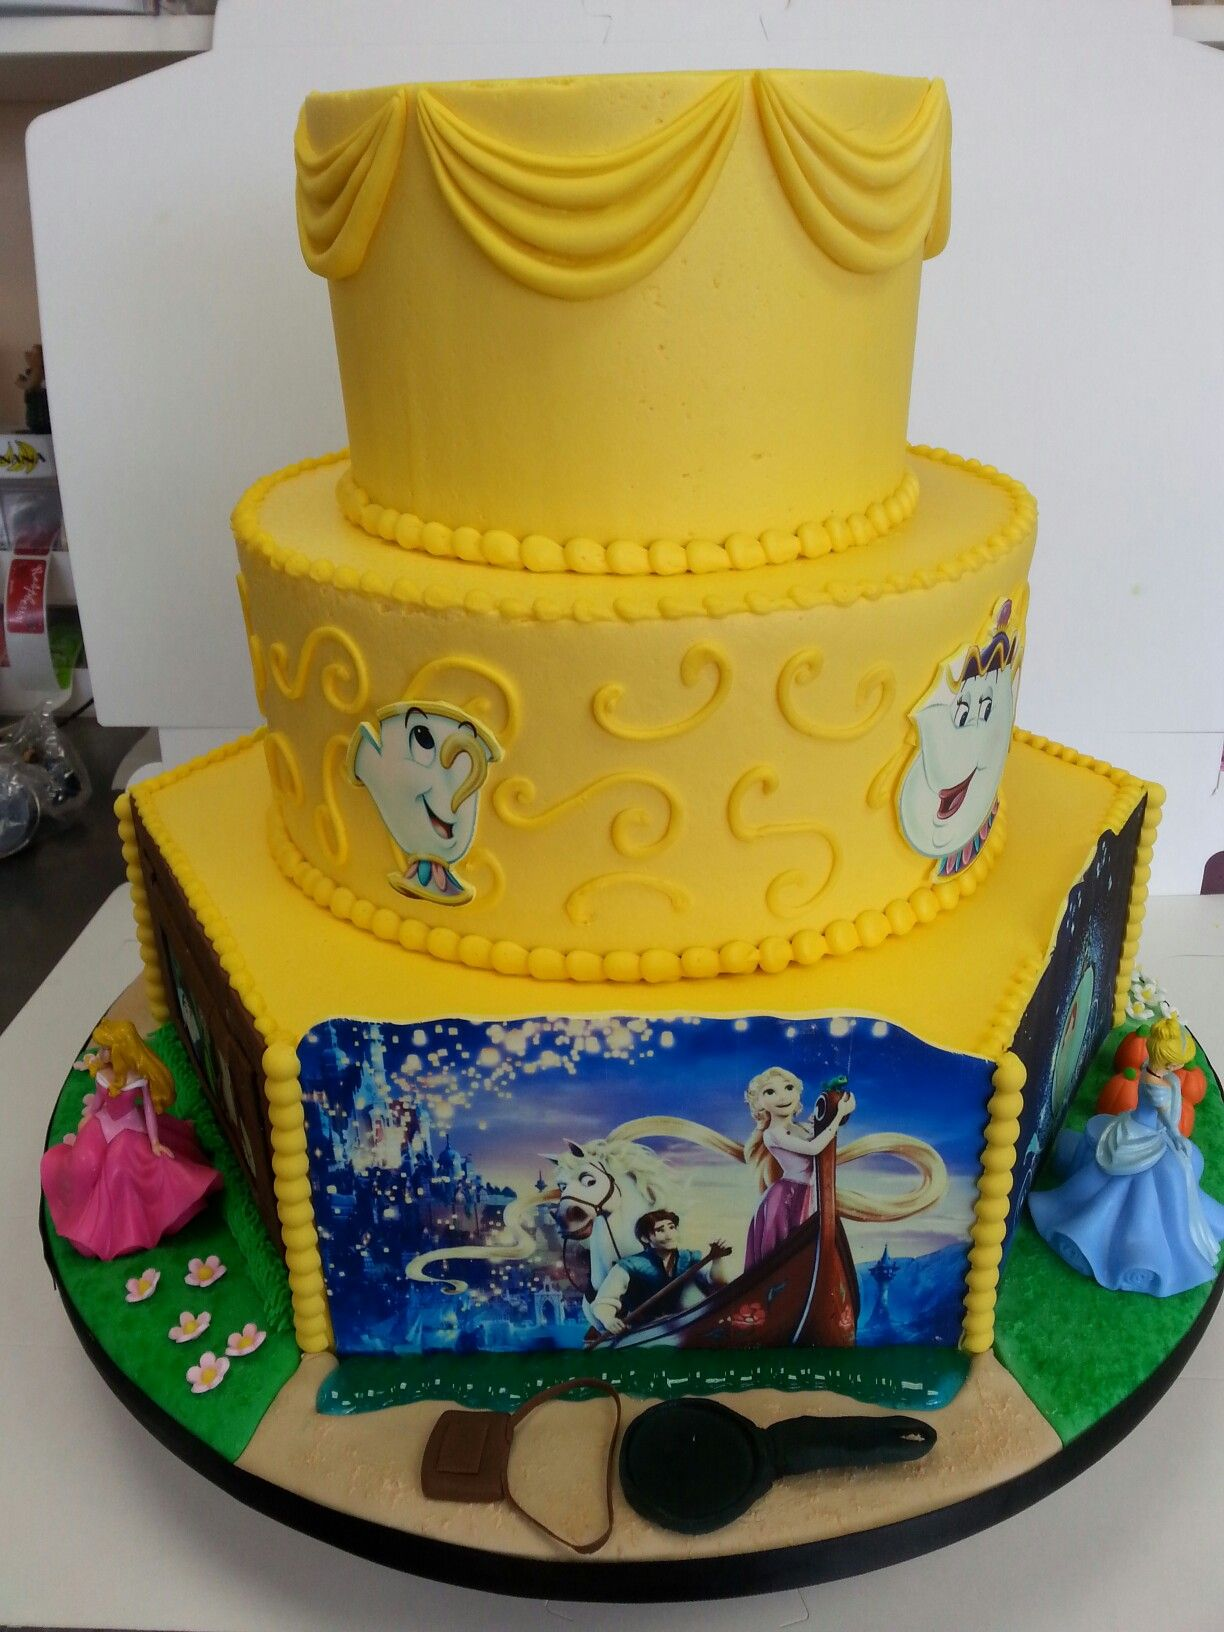 Princess themed birthday cake for Icing Smiles.  #bakingadifference